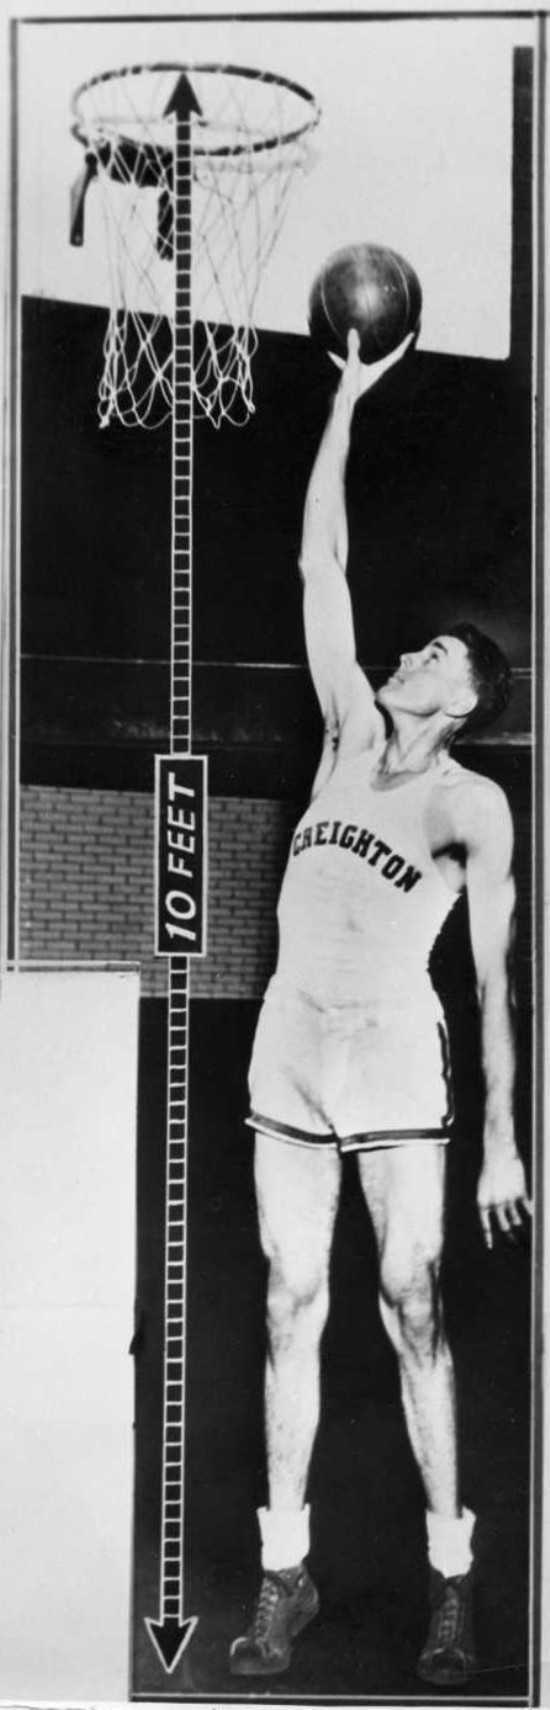 Willard Schmidt won a gold medal in the 1936 Olympics